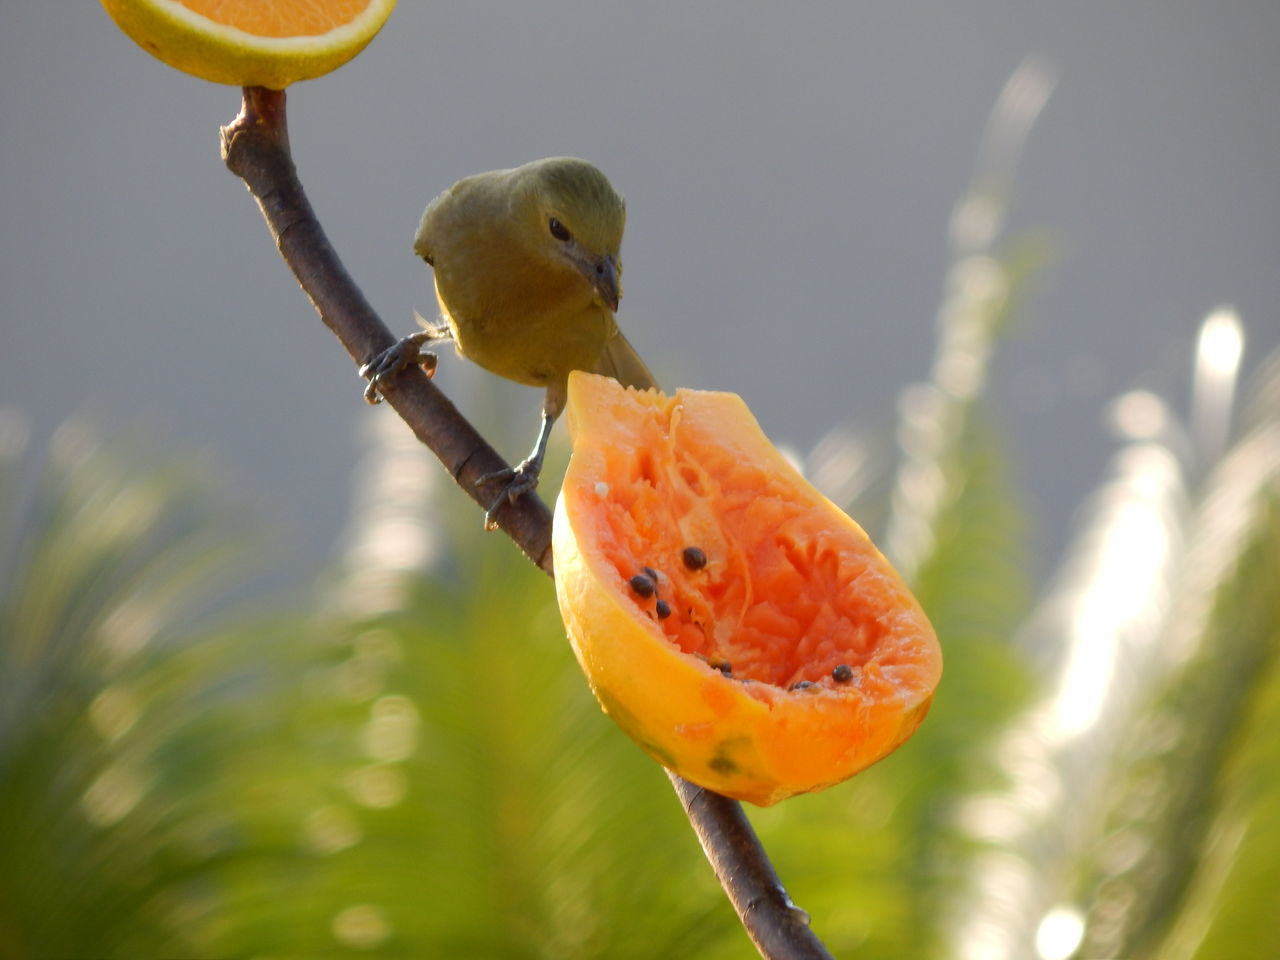 focus on foreground, fruit, close-up, bird, no people, nature, animals in the wild, outdoors, day, perching, animal themes, beauty in nature, food, freshness